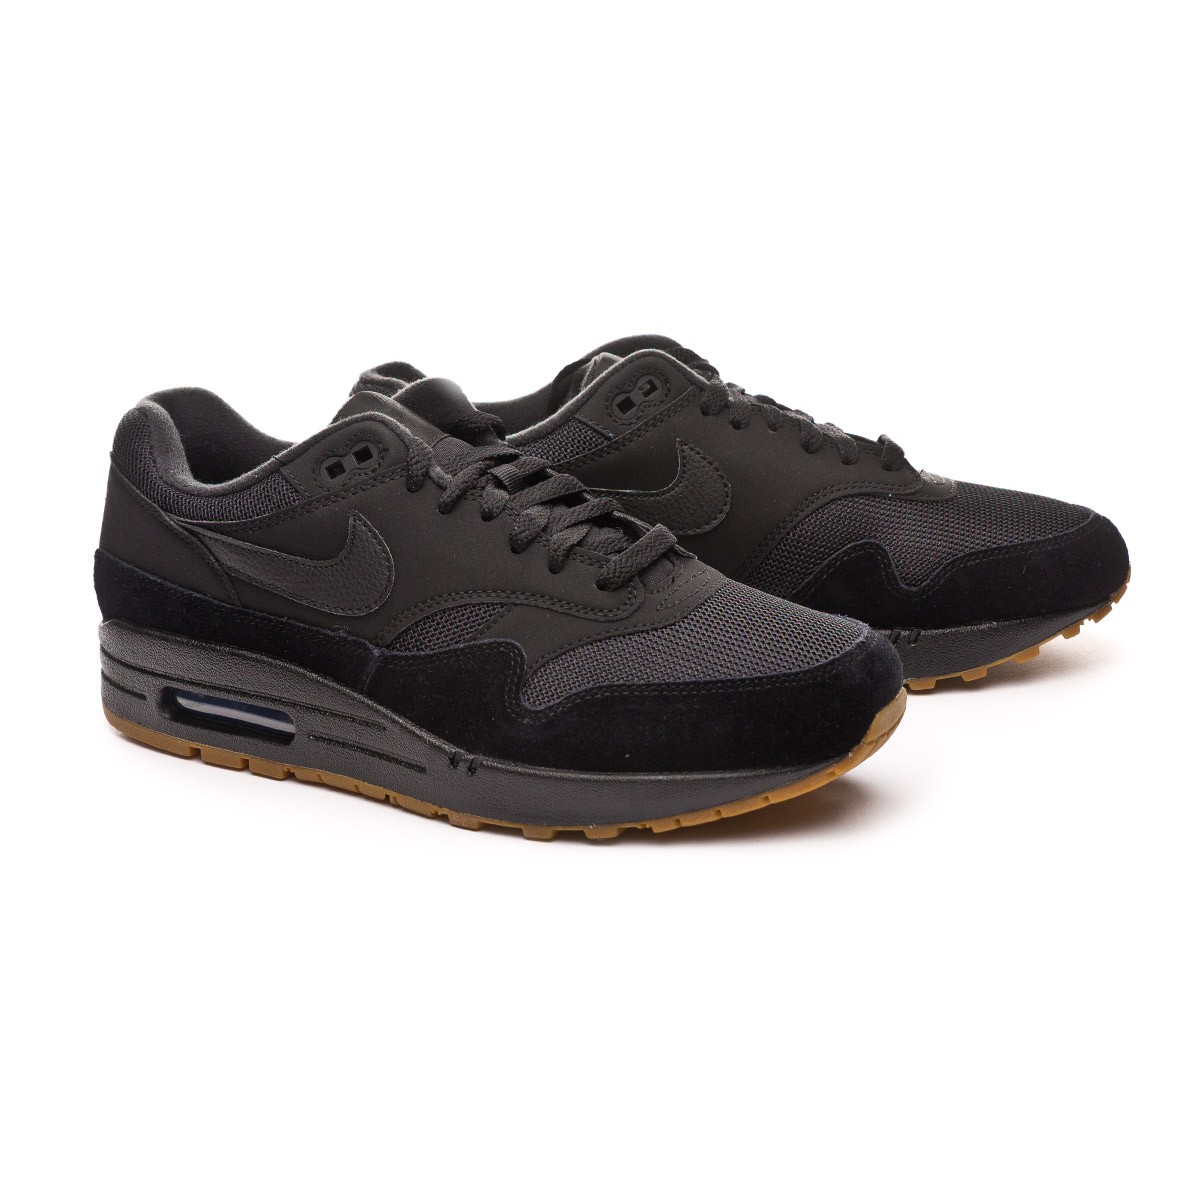 e2a0b63fac Trainers Nike Air Max 1 2019 Black-Gum med brown - Football store Fútbol  Emotion